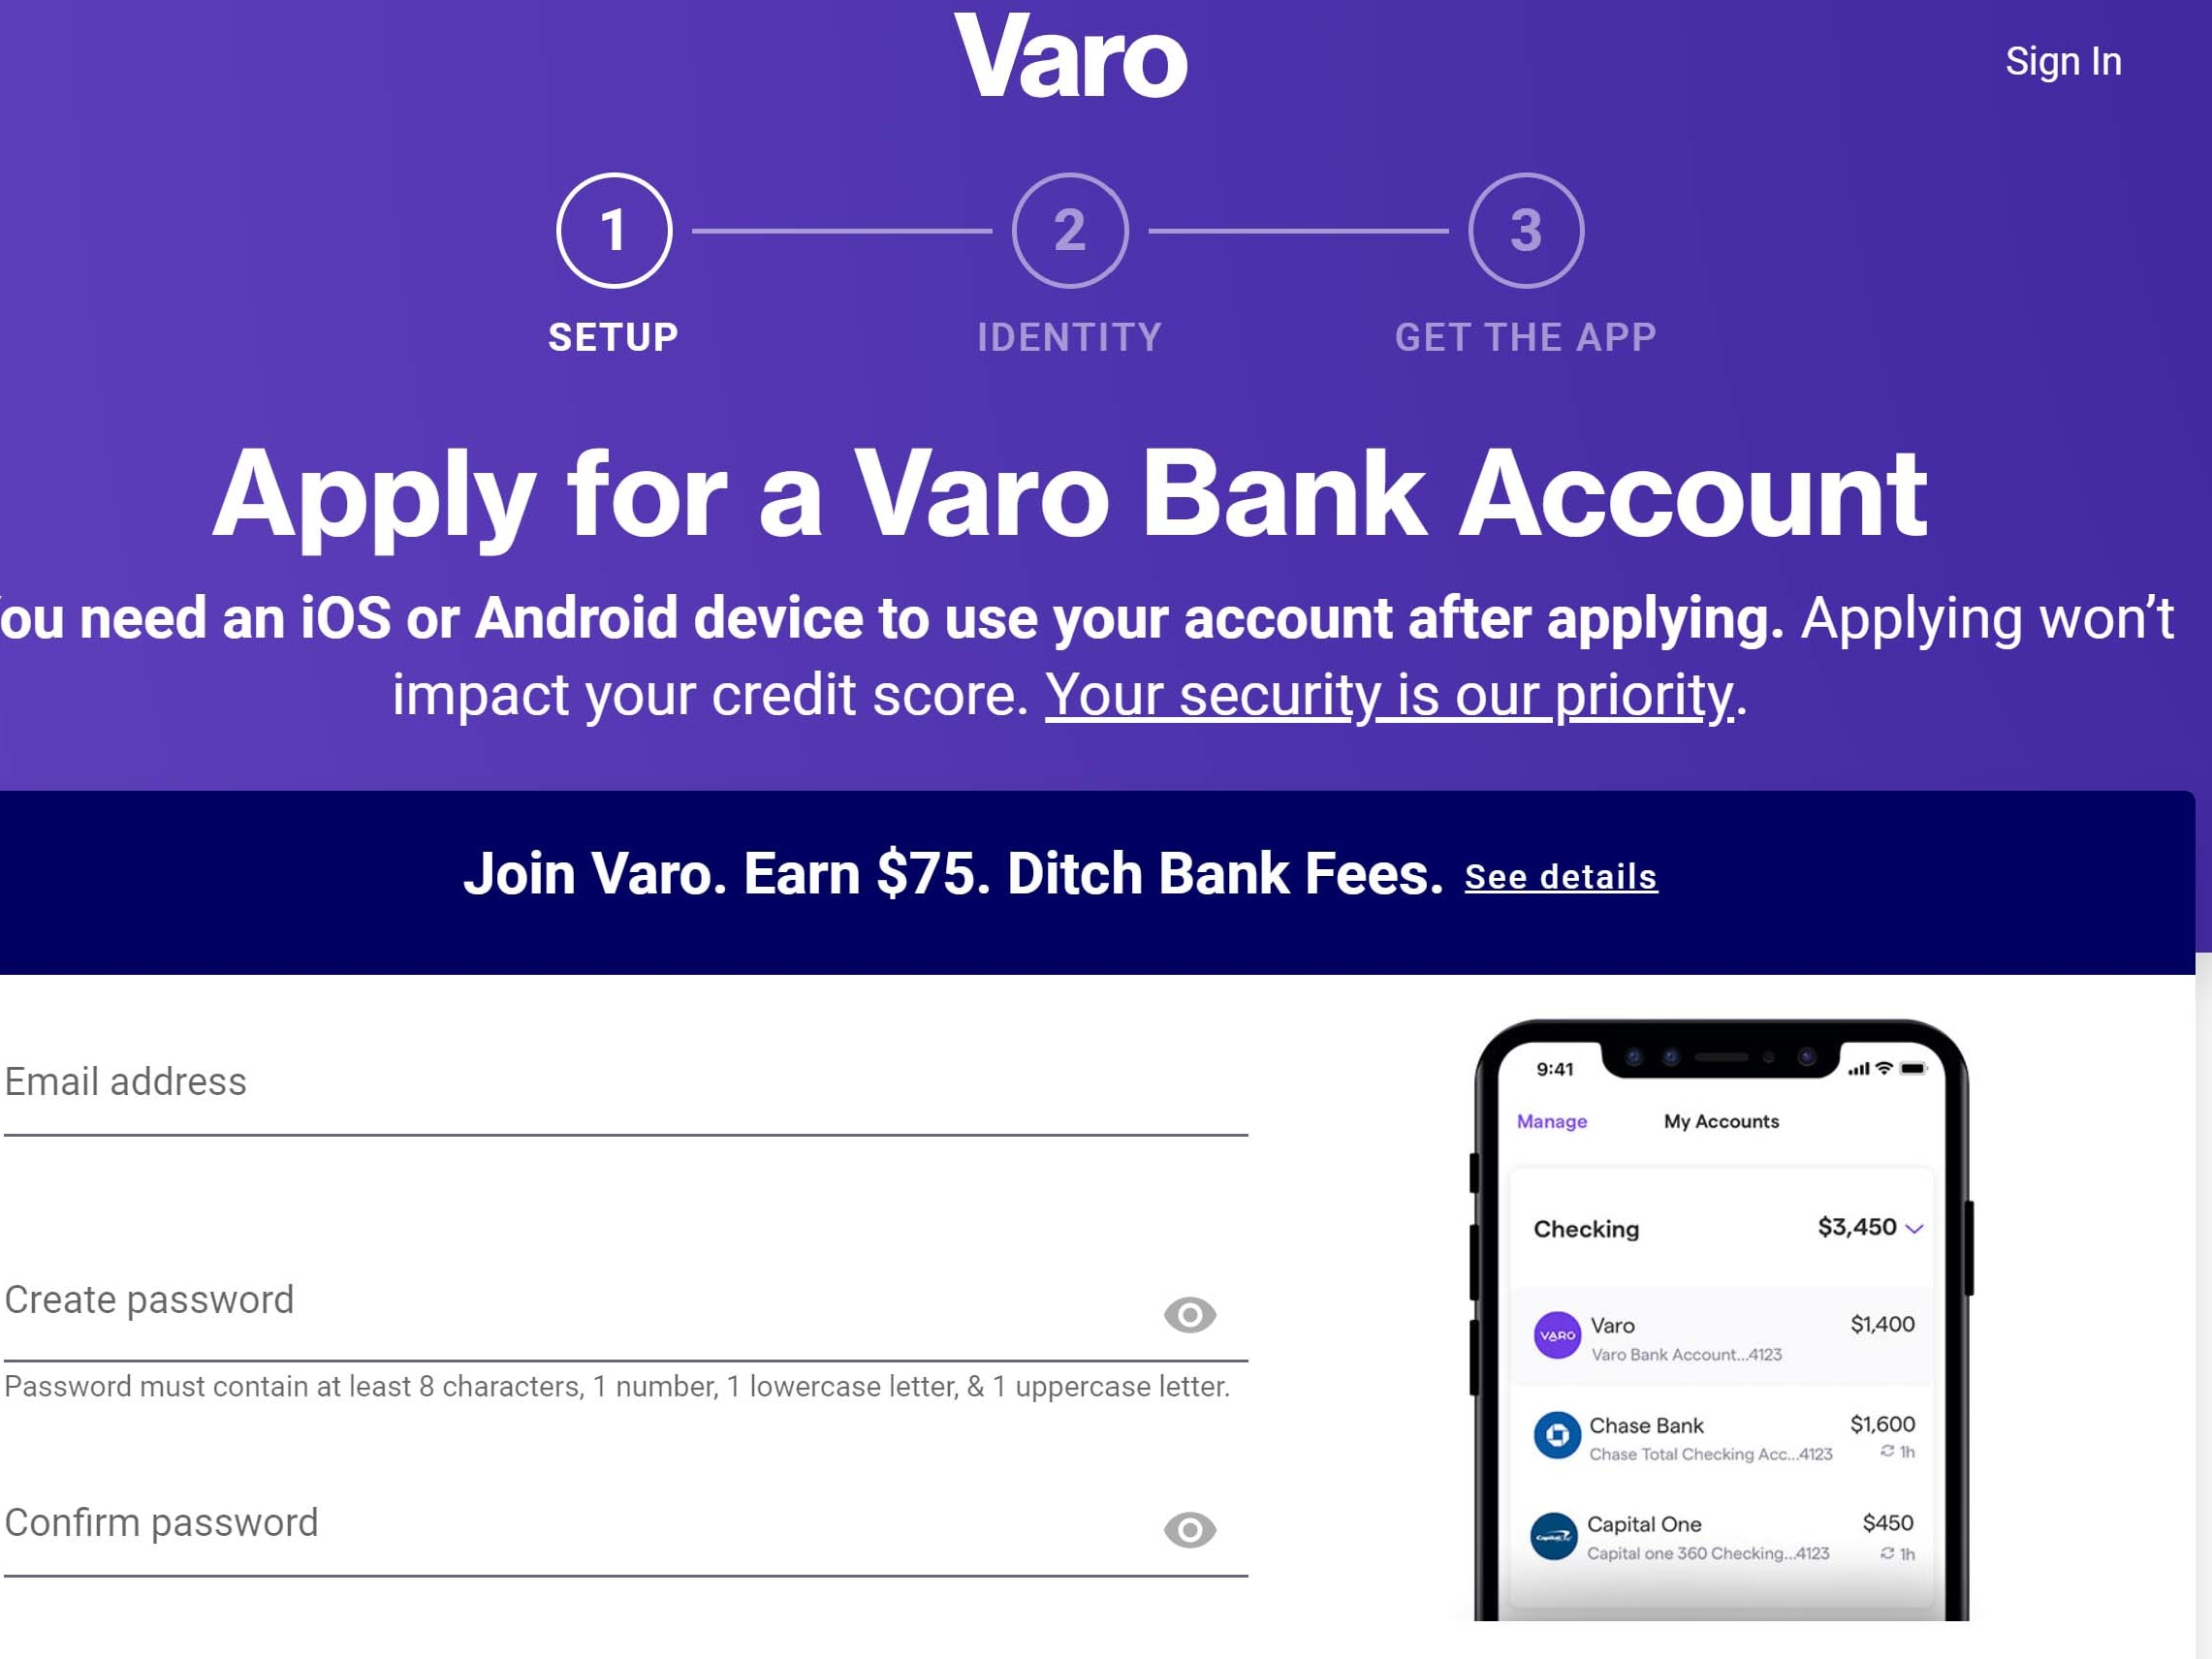 Free $100 from Varo. Easy sign up